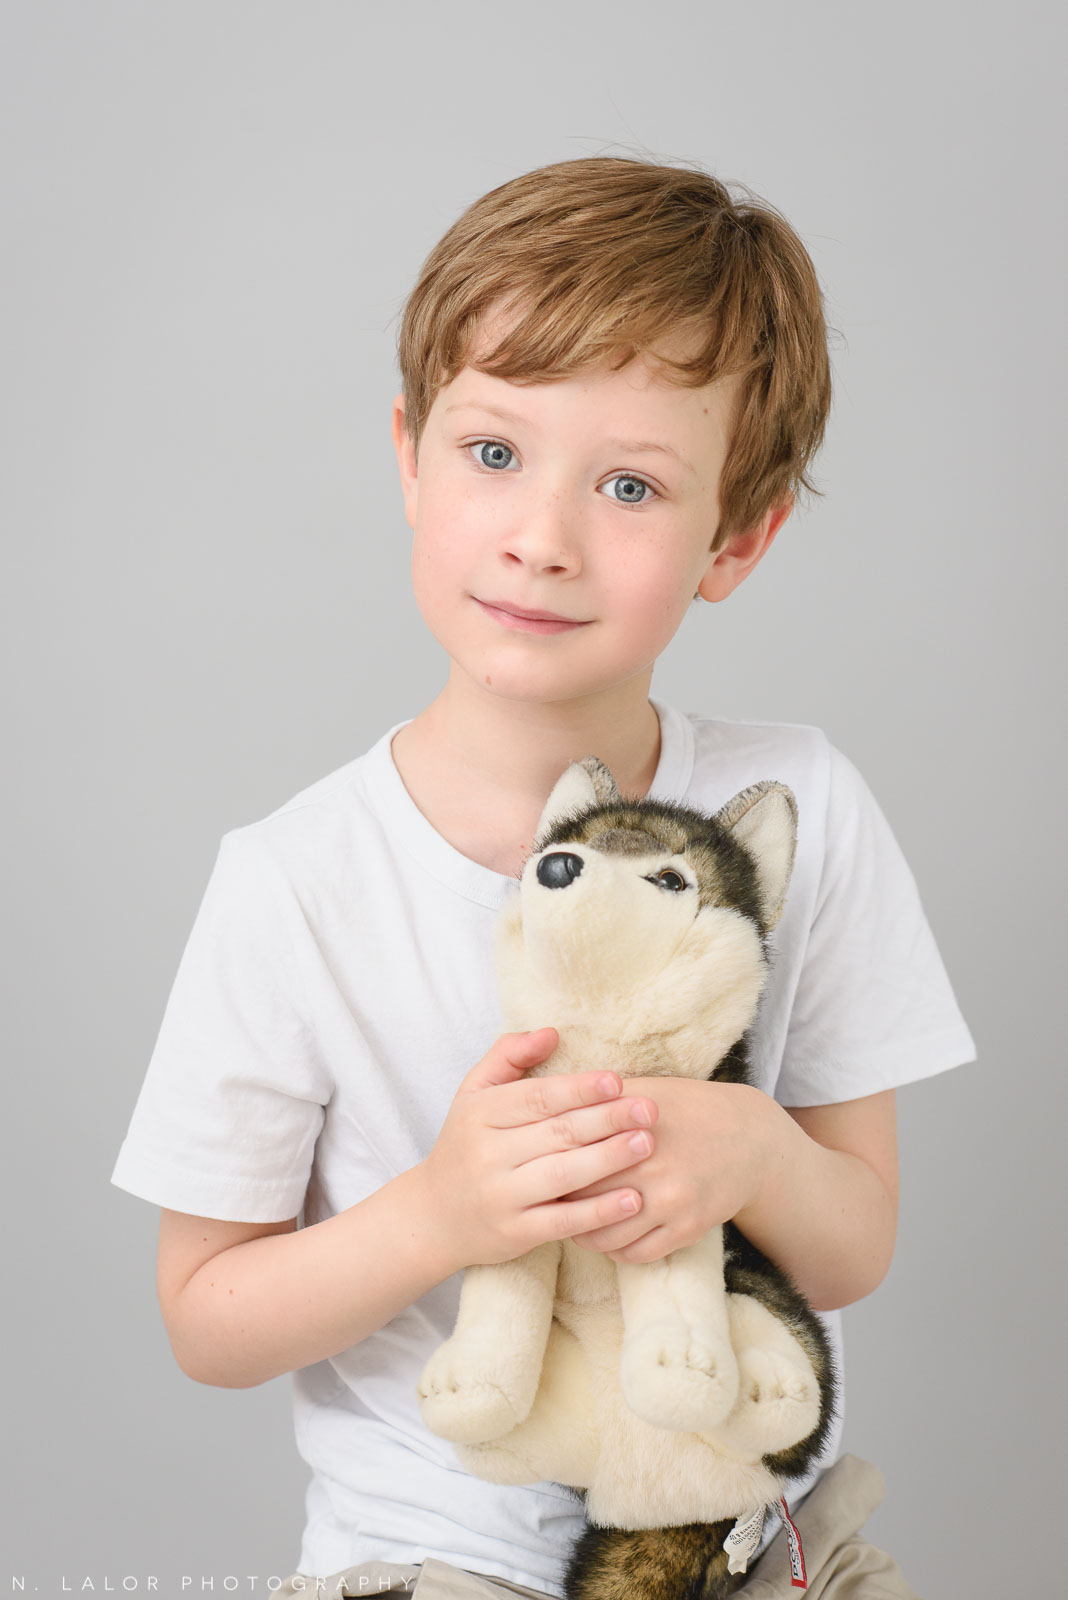 Boy with his favorite toy, Arctic Dog. Simple studio portrait session with N. Lalor Photography in Greenwich, CT.